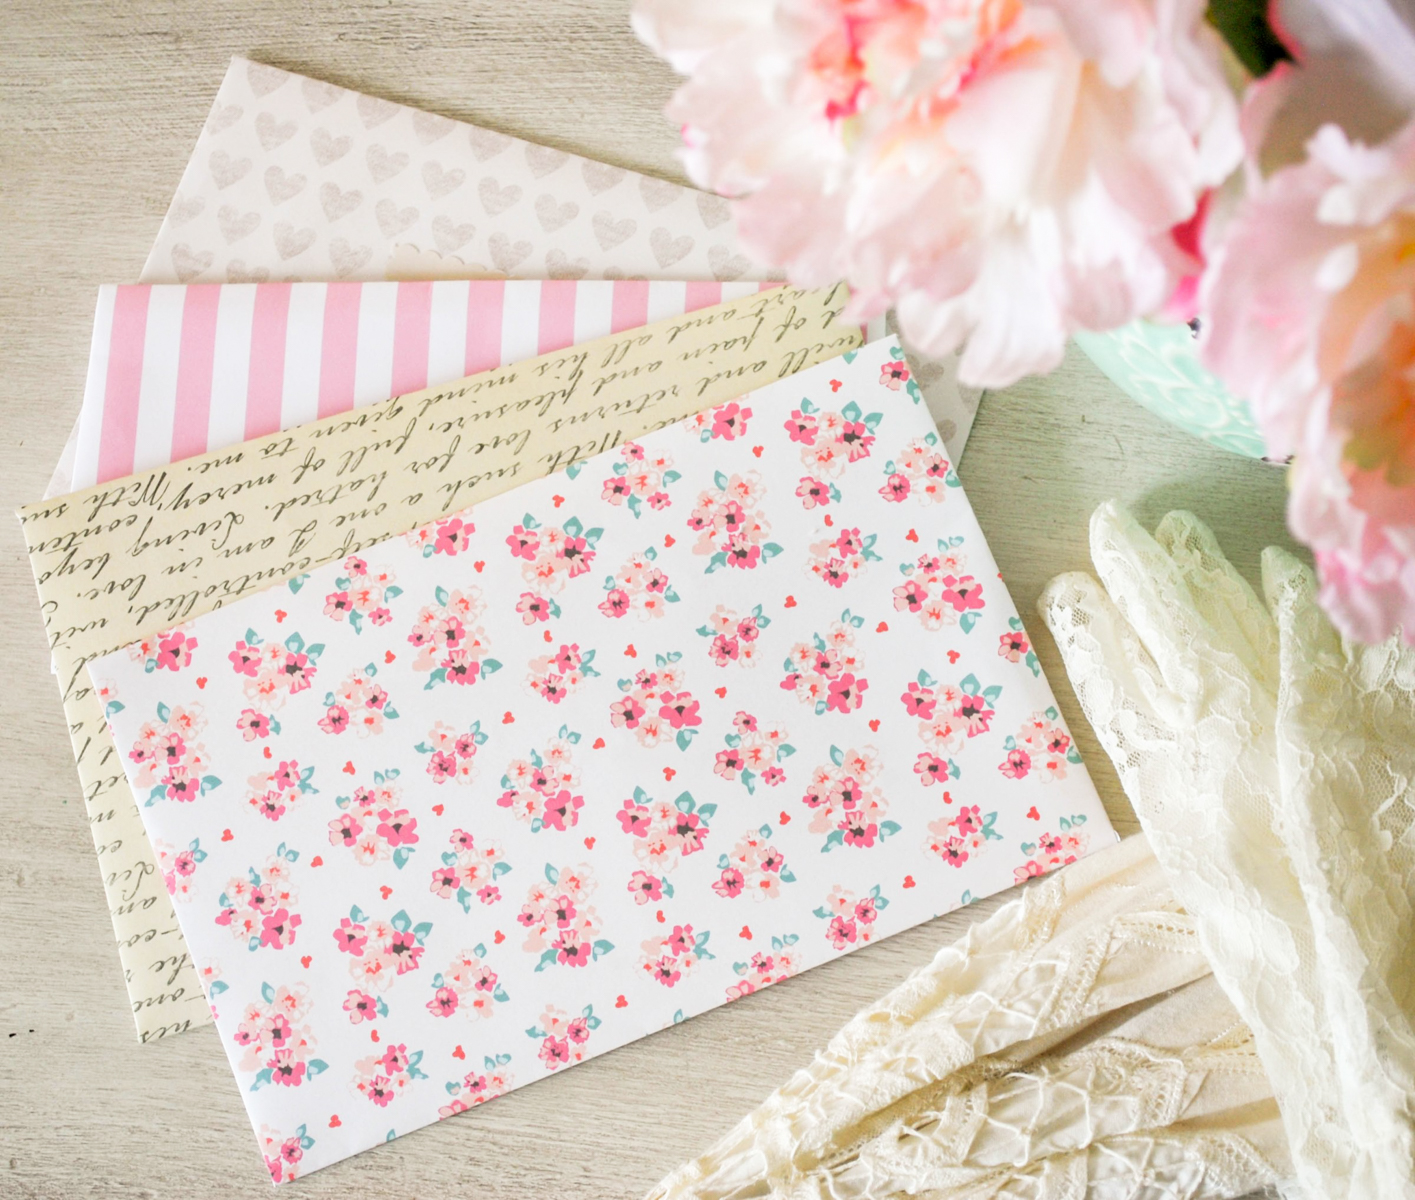 How to make an Envelope – DIY heart Envelope